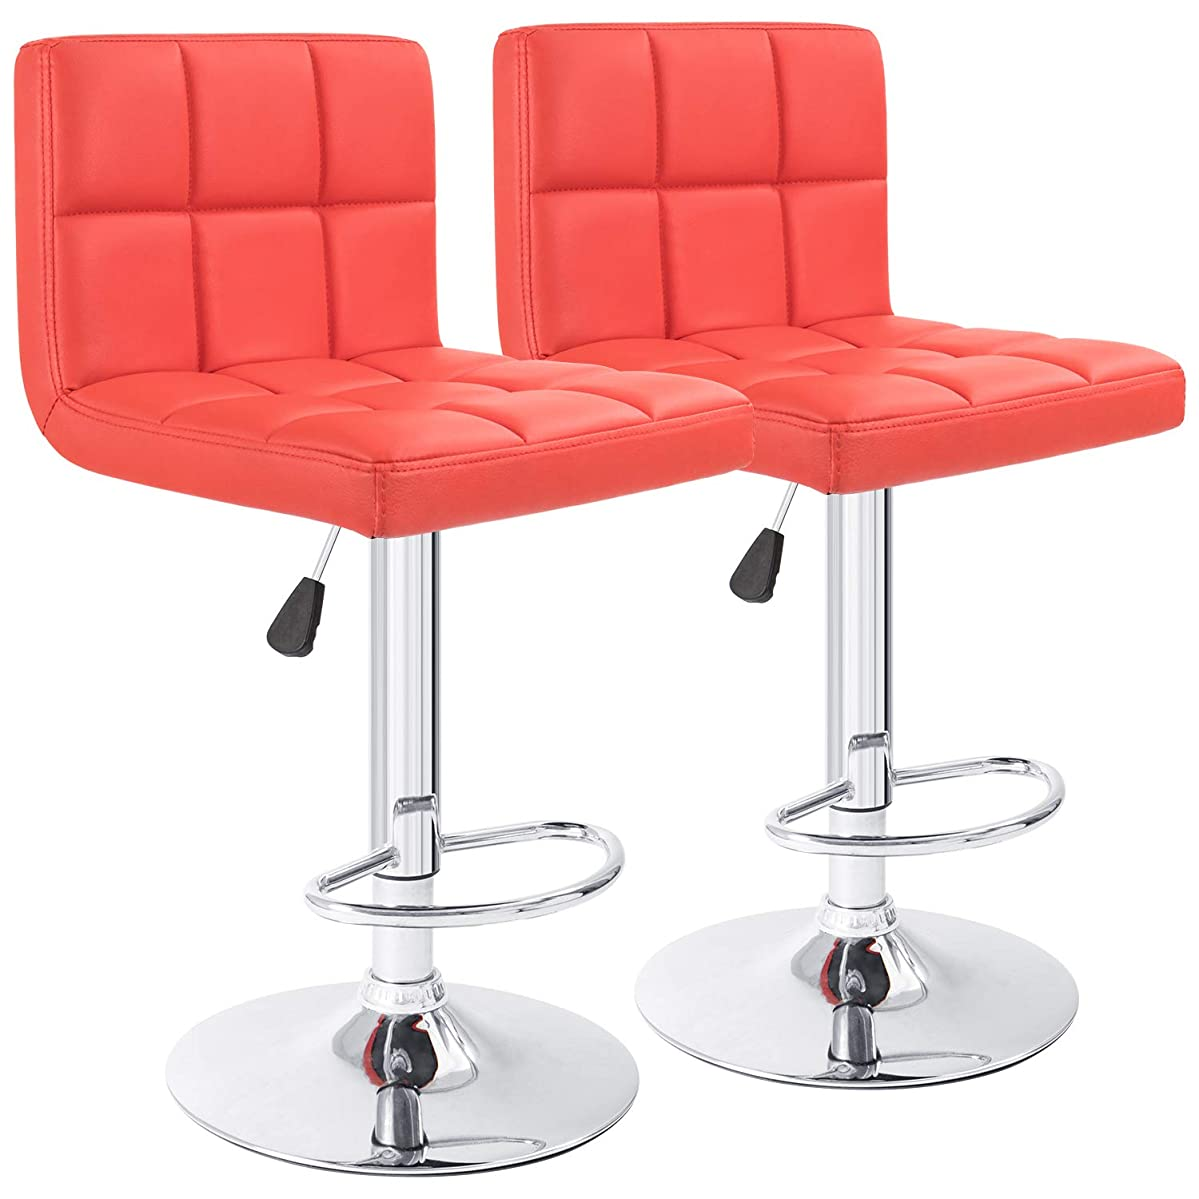 Furmax Bar Stools Red Modern Pu Leather Swivel Adjustable Hydraulic Bar Stool Square Counter Height Stool Set of 2(Red)